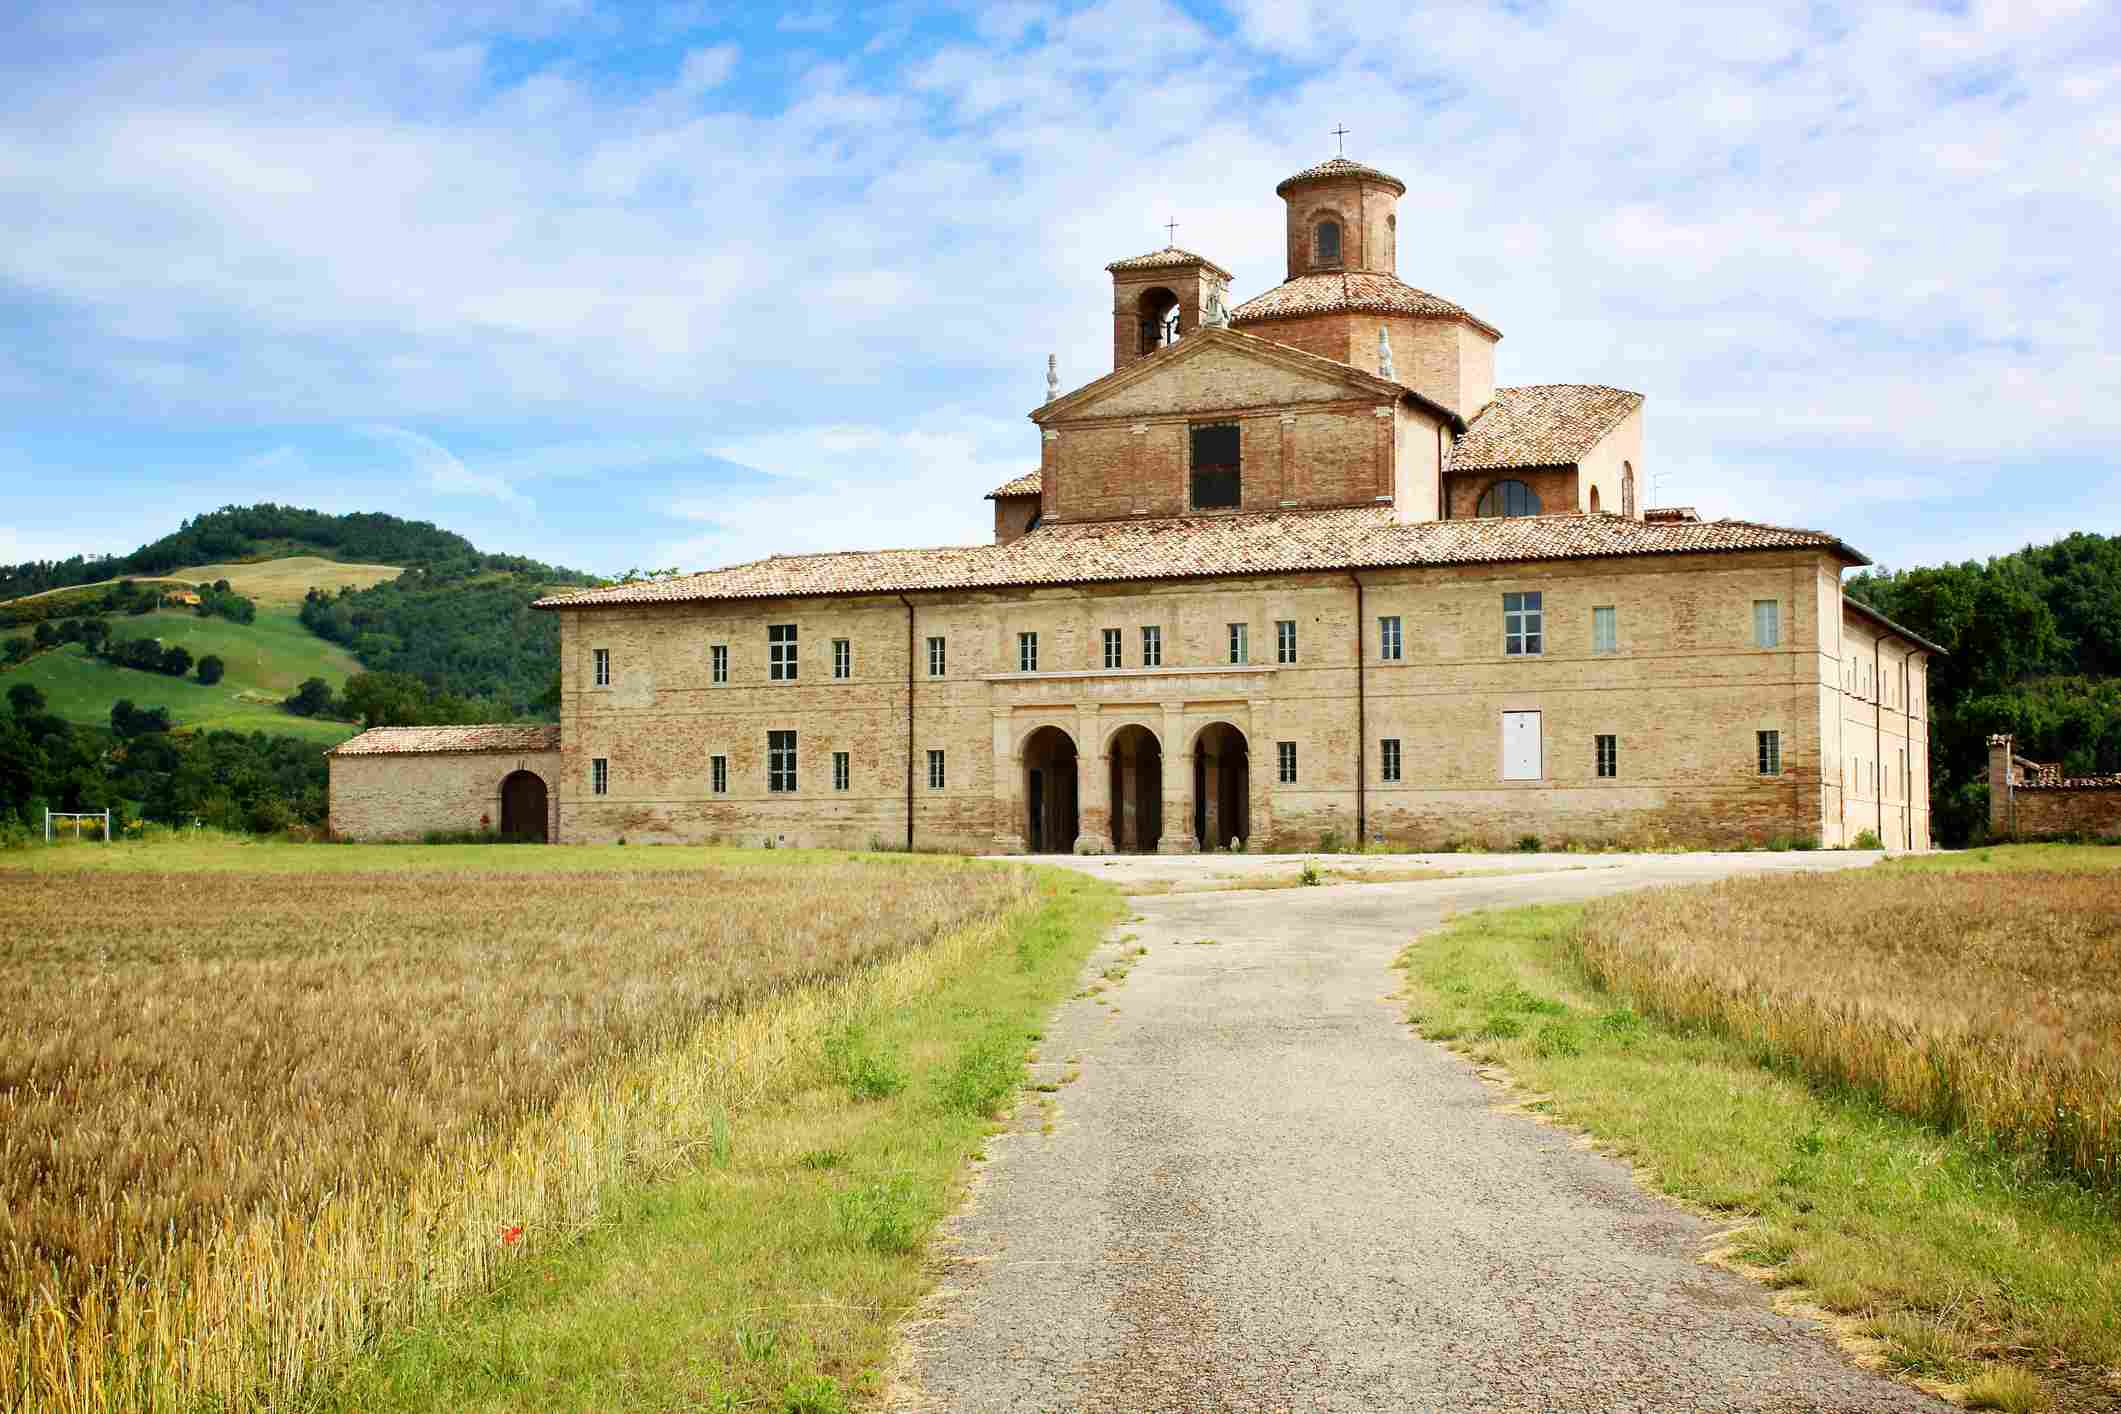 Old monastery with hills in background, Urbania, Marche, Italy